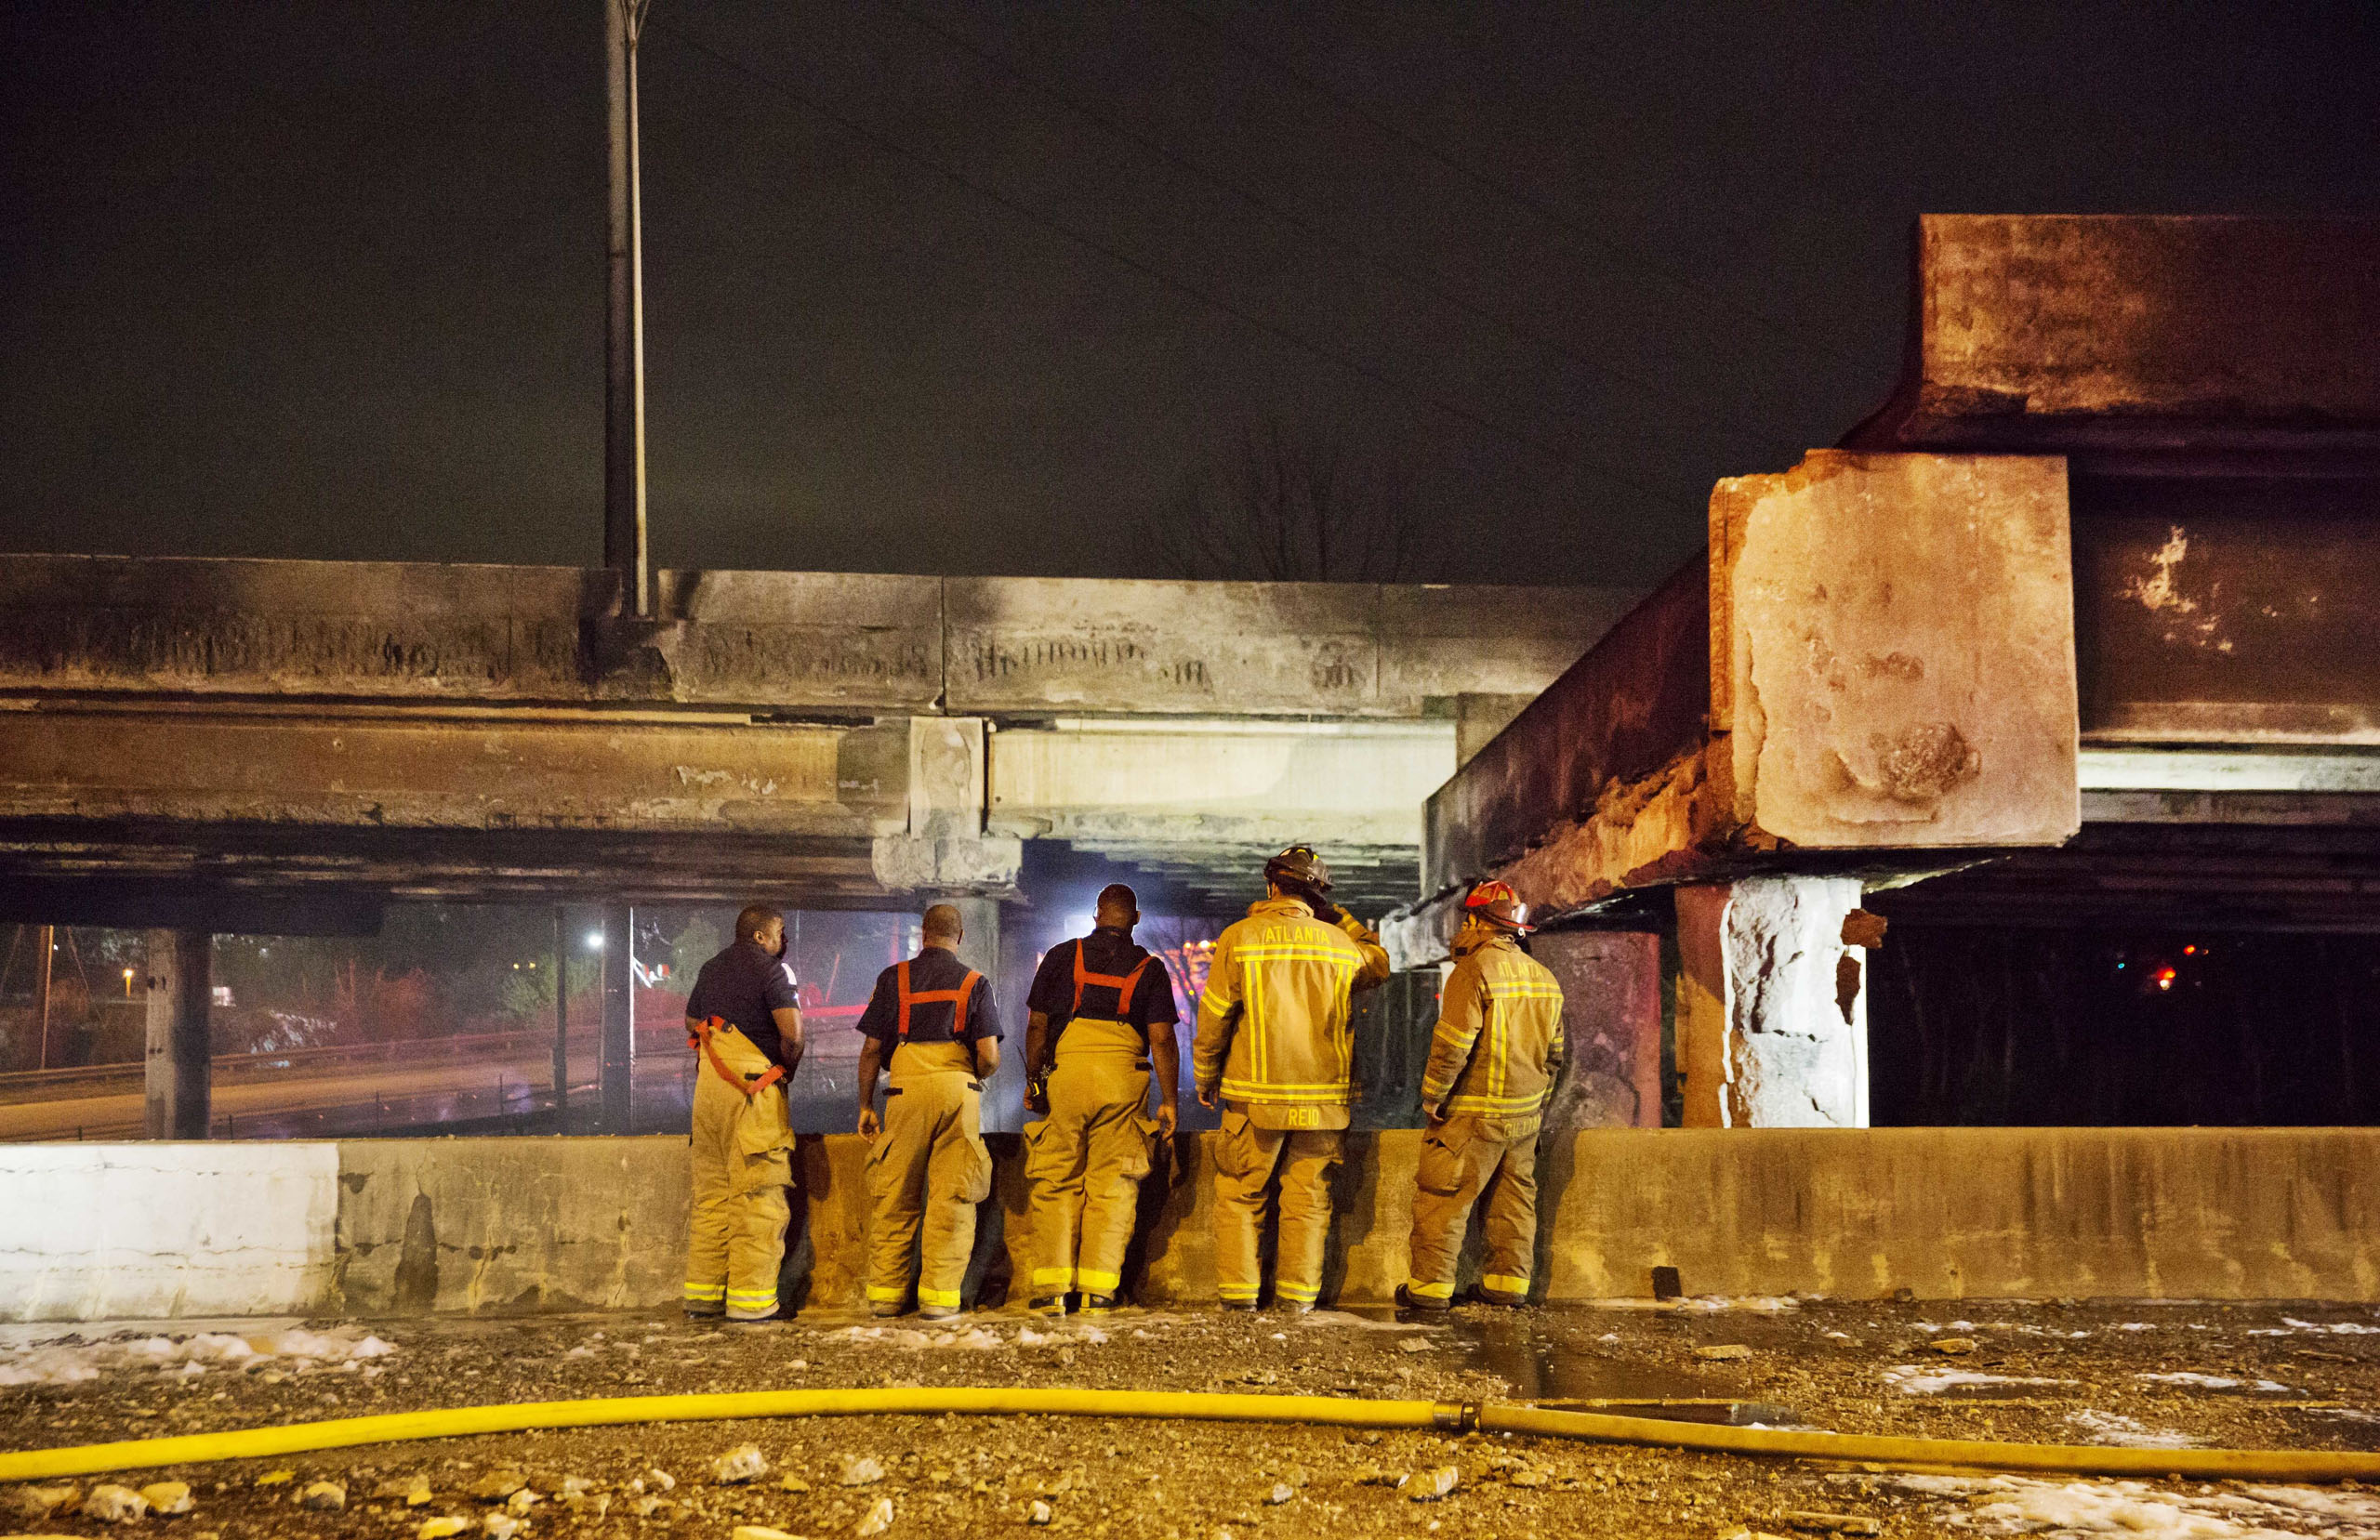 Firefighters survey the section of an overpass that collapsed from a large fire on Interstate 85 in Atlanta, Thursday, March 30, 2017.